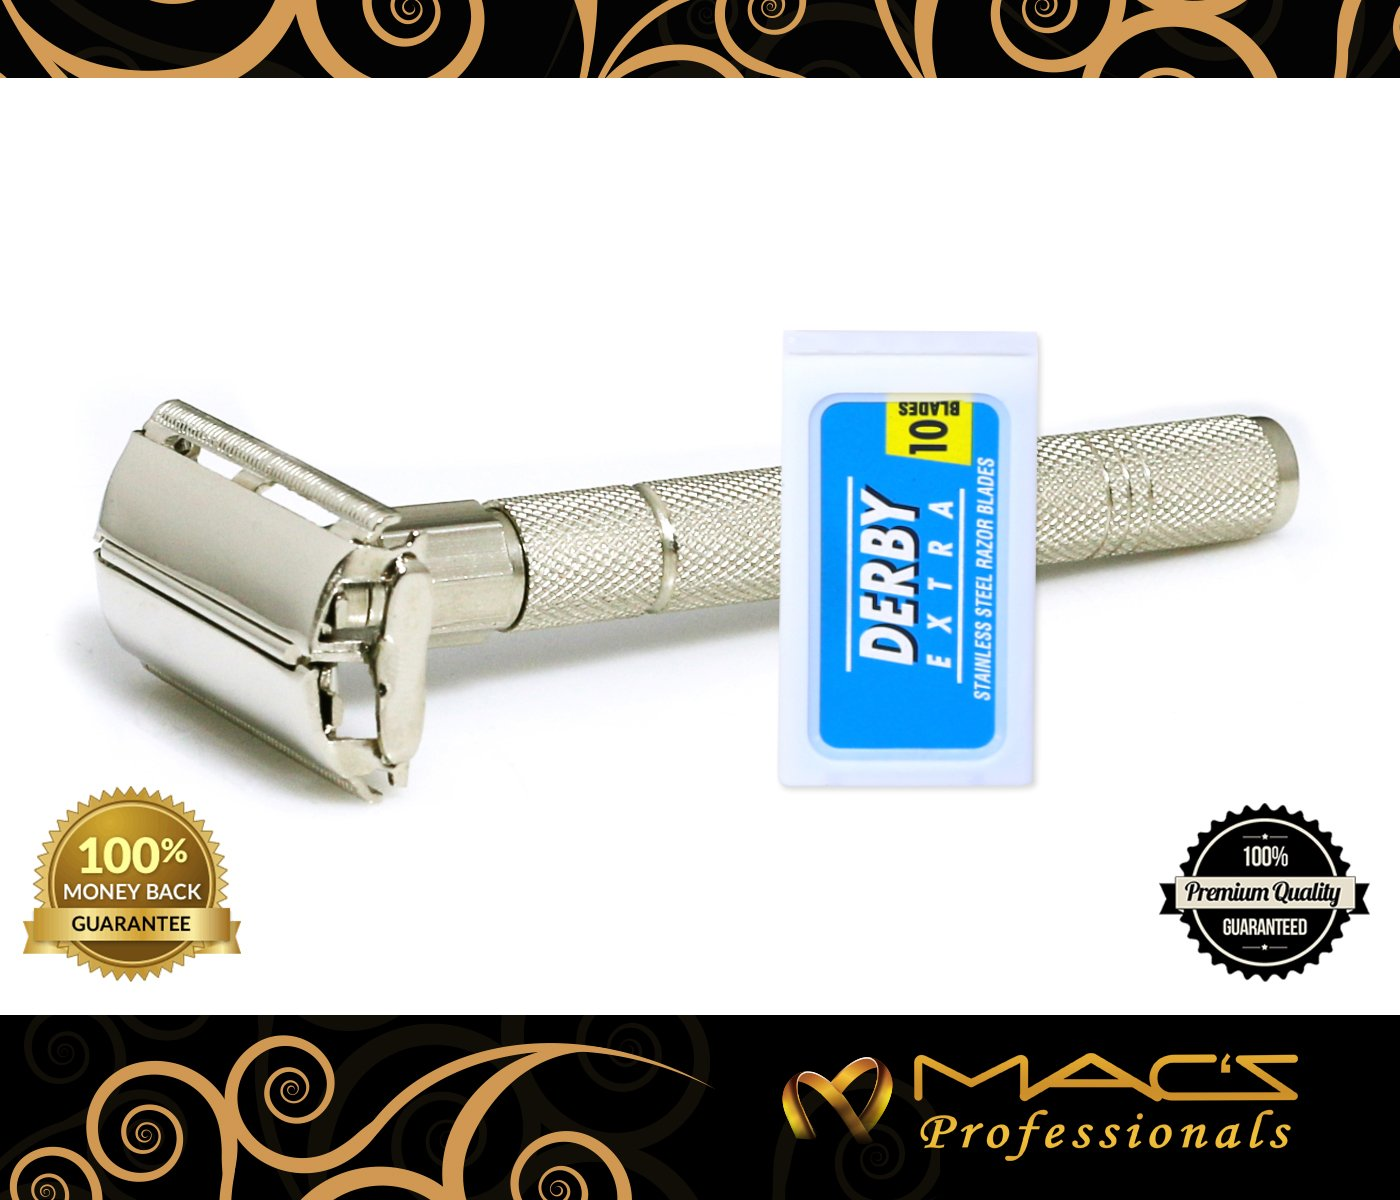 Macs Deluxe Double Edge Safety Razor-Butterfly Safety-Shaving Razor +10 Derby Long Lasting Platinum-Chrome Super Sharp Stainless Steel Blades in Box, This is the Best Shaving Razor of Your Life-2057BF Macs Razor products